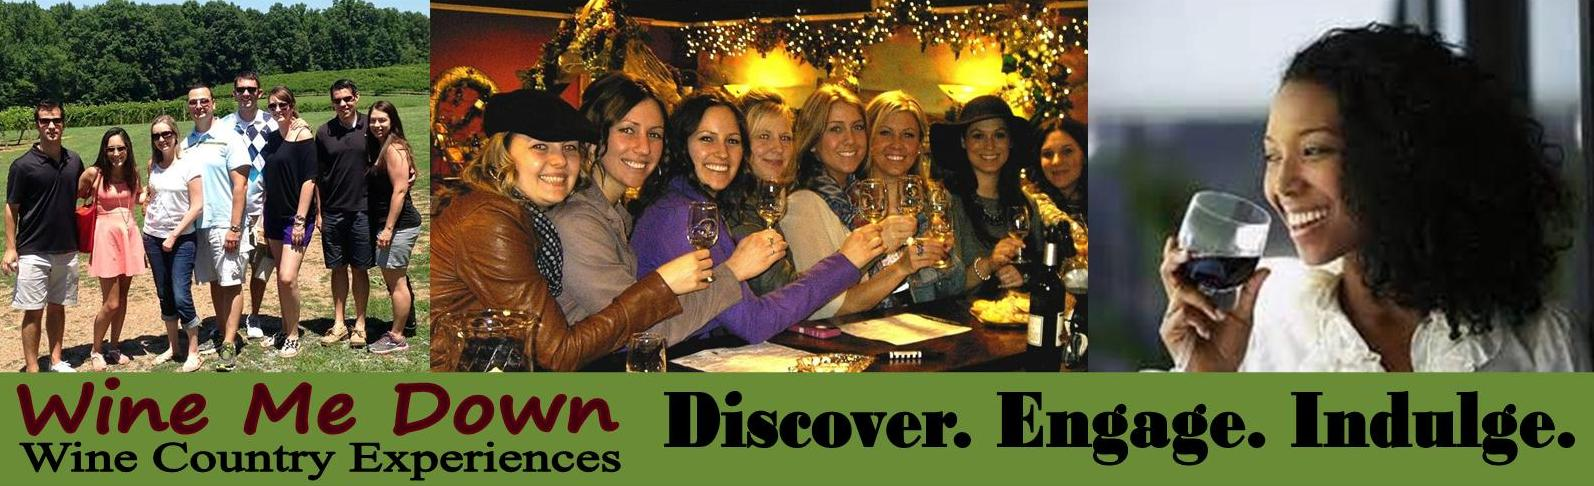 Wine Me Down, wine tasting, wine tour, winery guide, charlotte, nashville